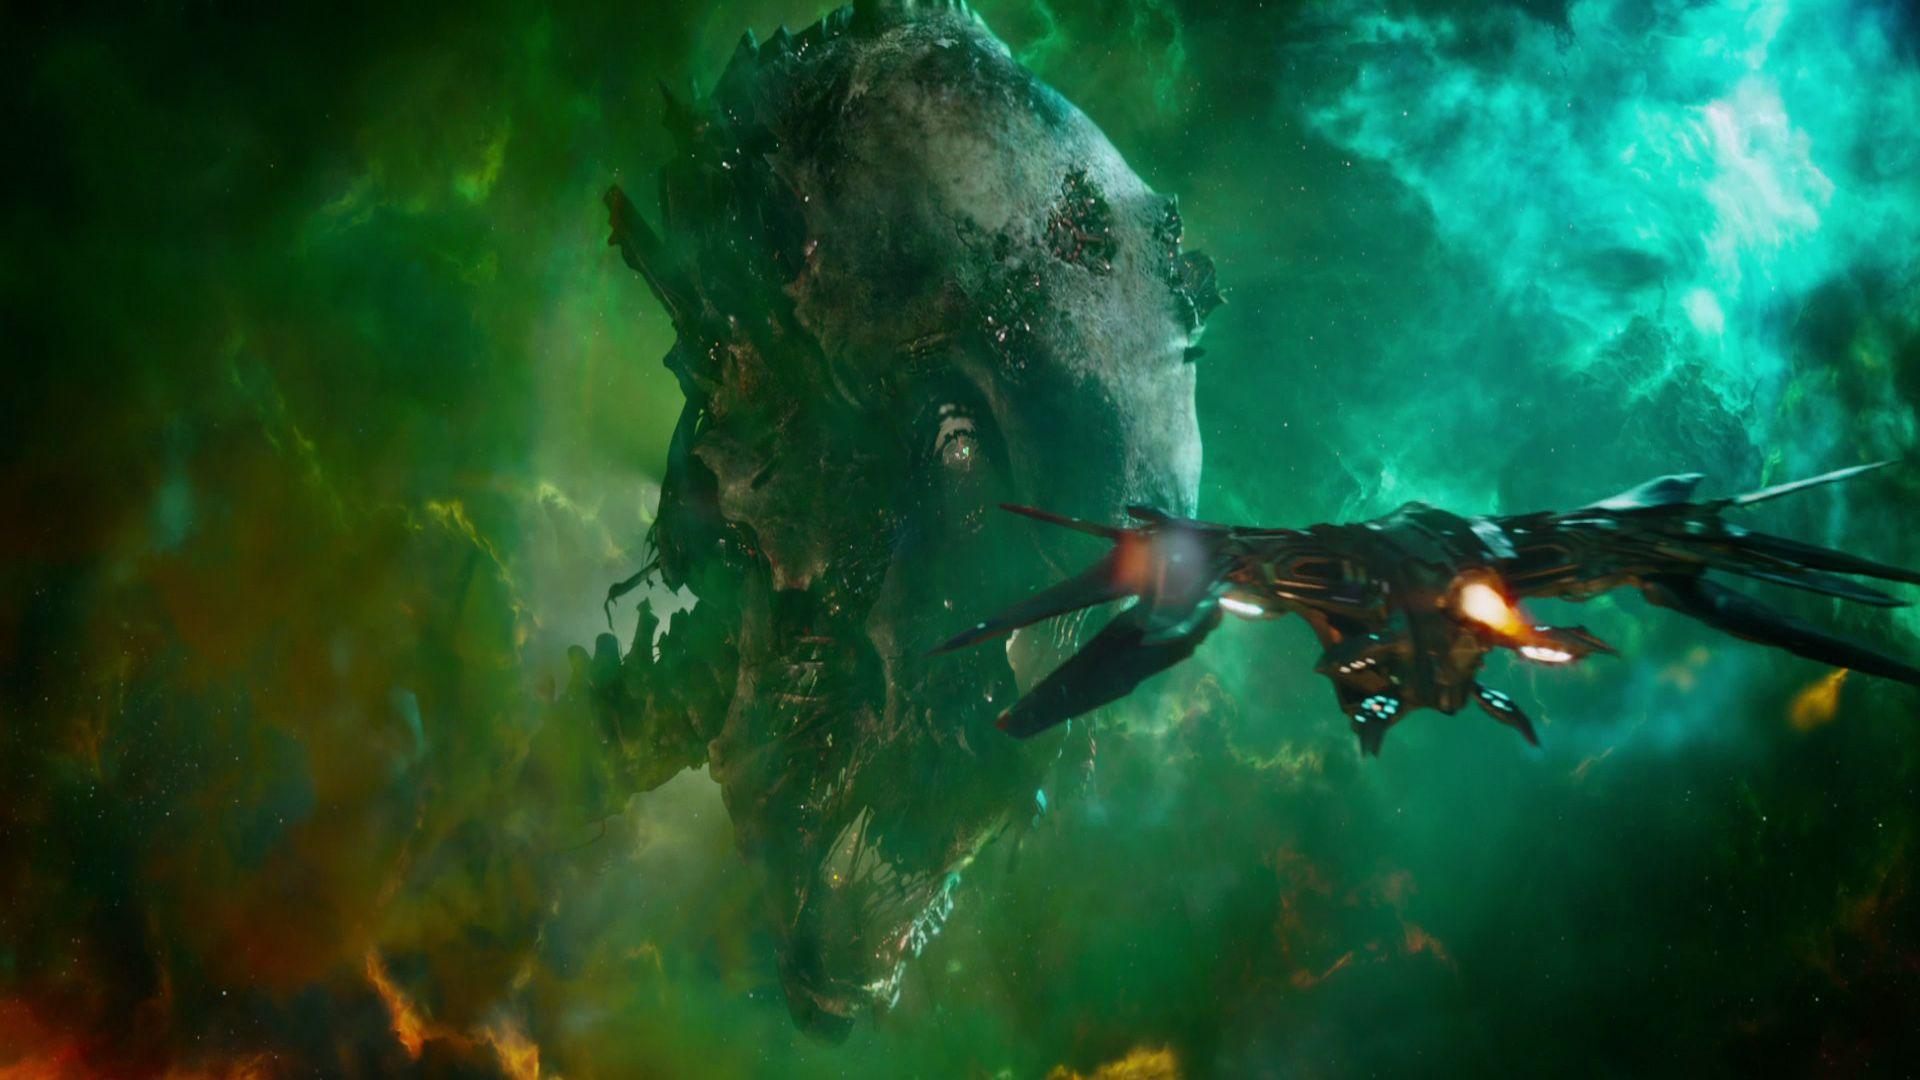 Free Download Guardians Of The Galaxy Wallpapers 1920x1080 For